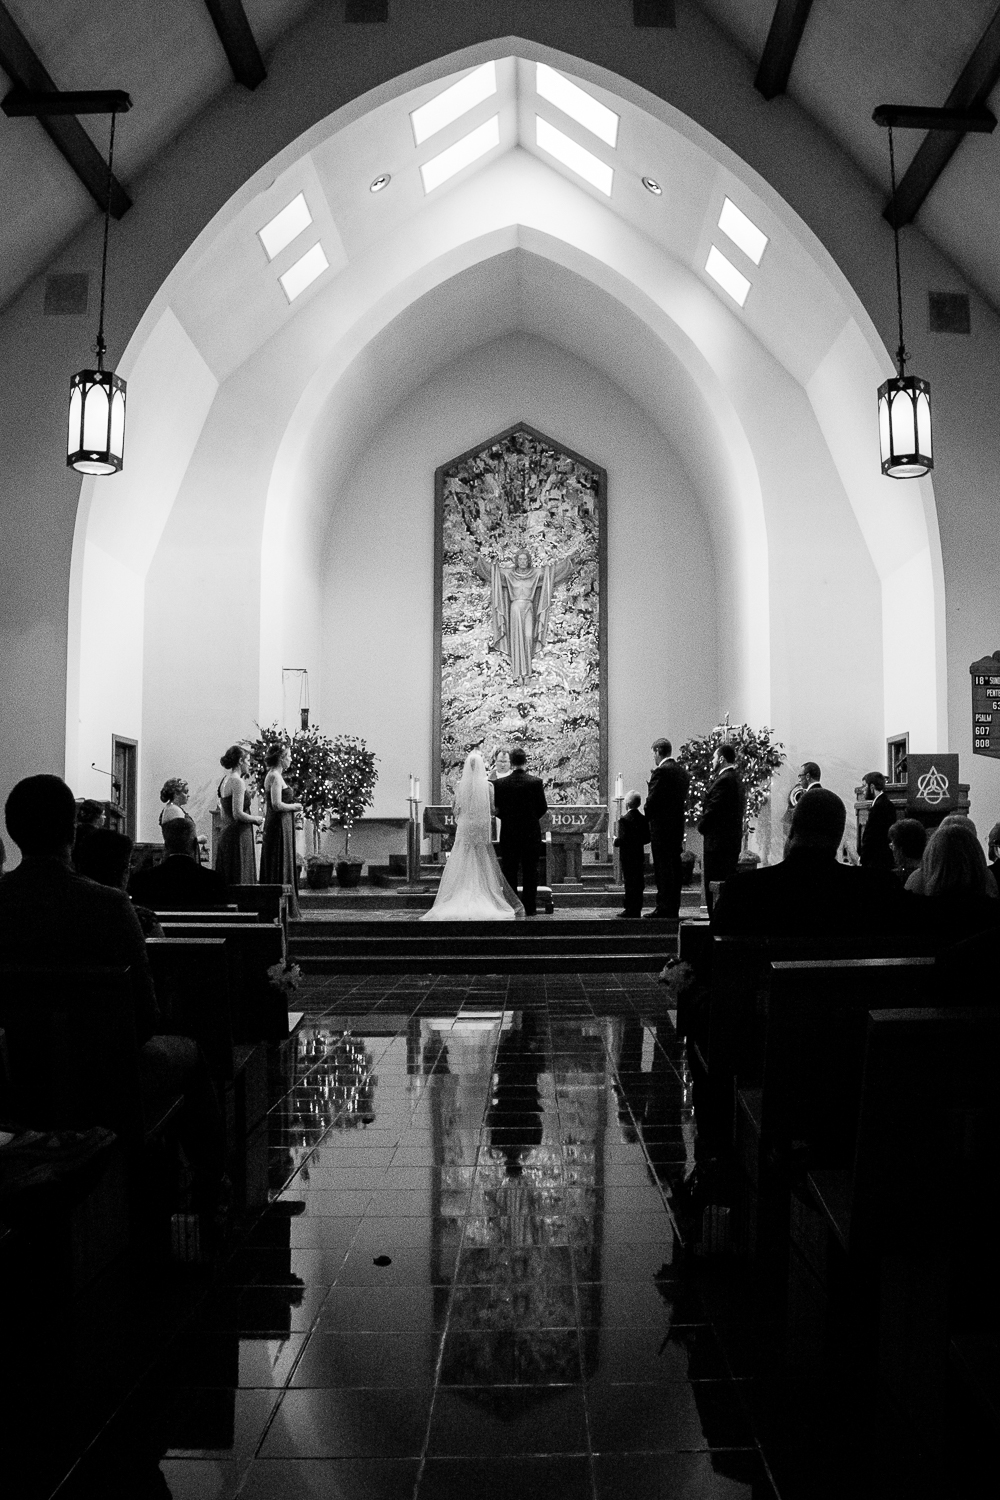 omaha-wedding-photographer-18.jpg